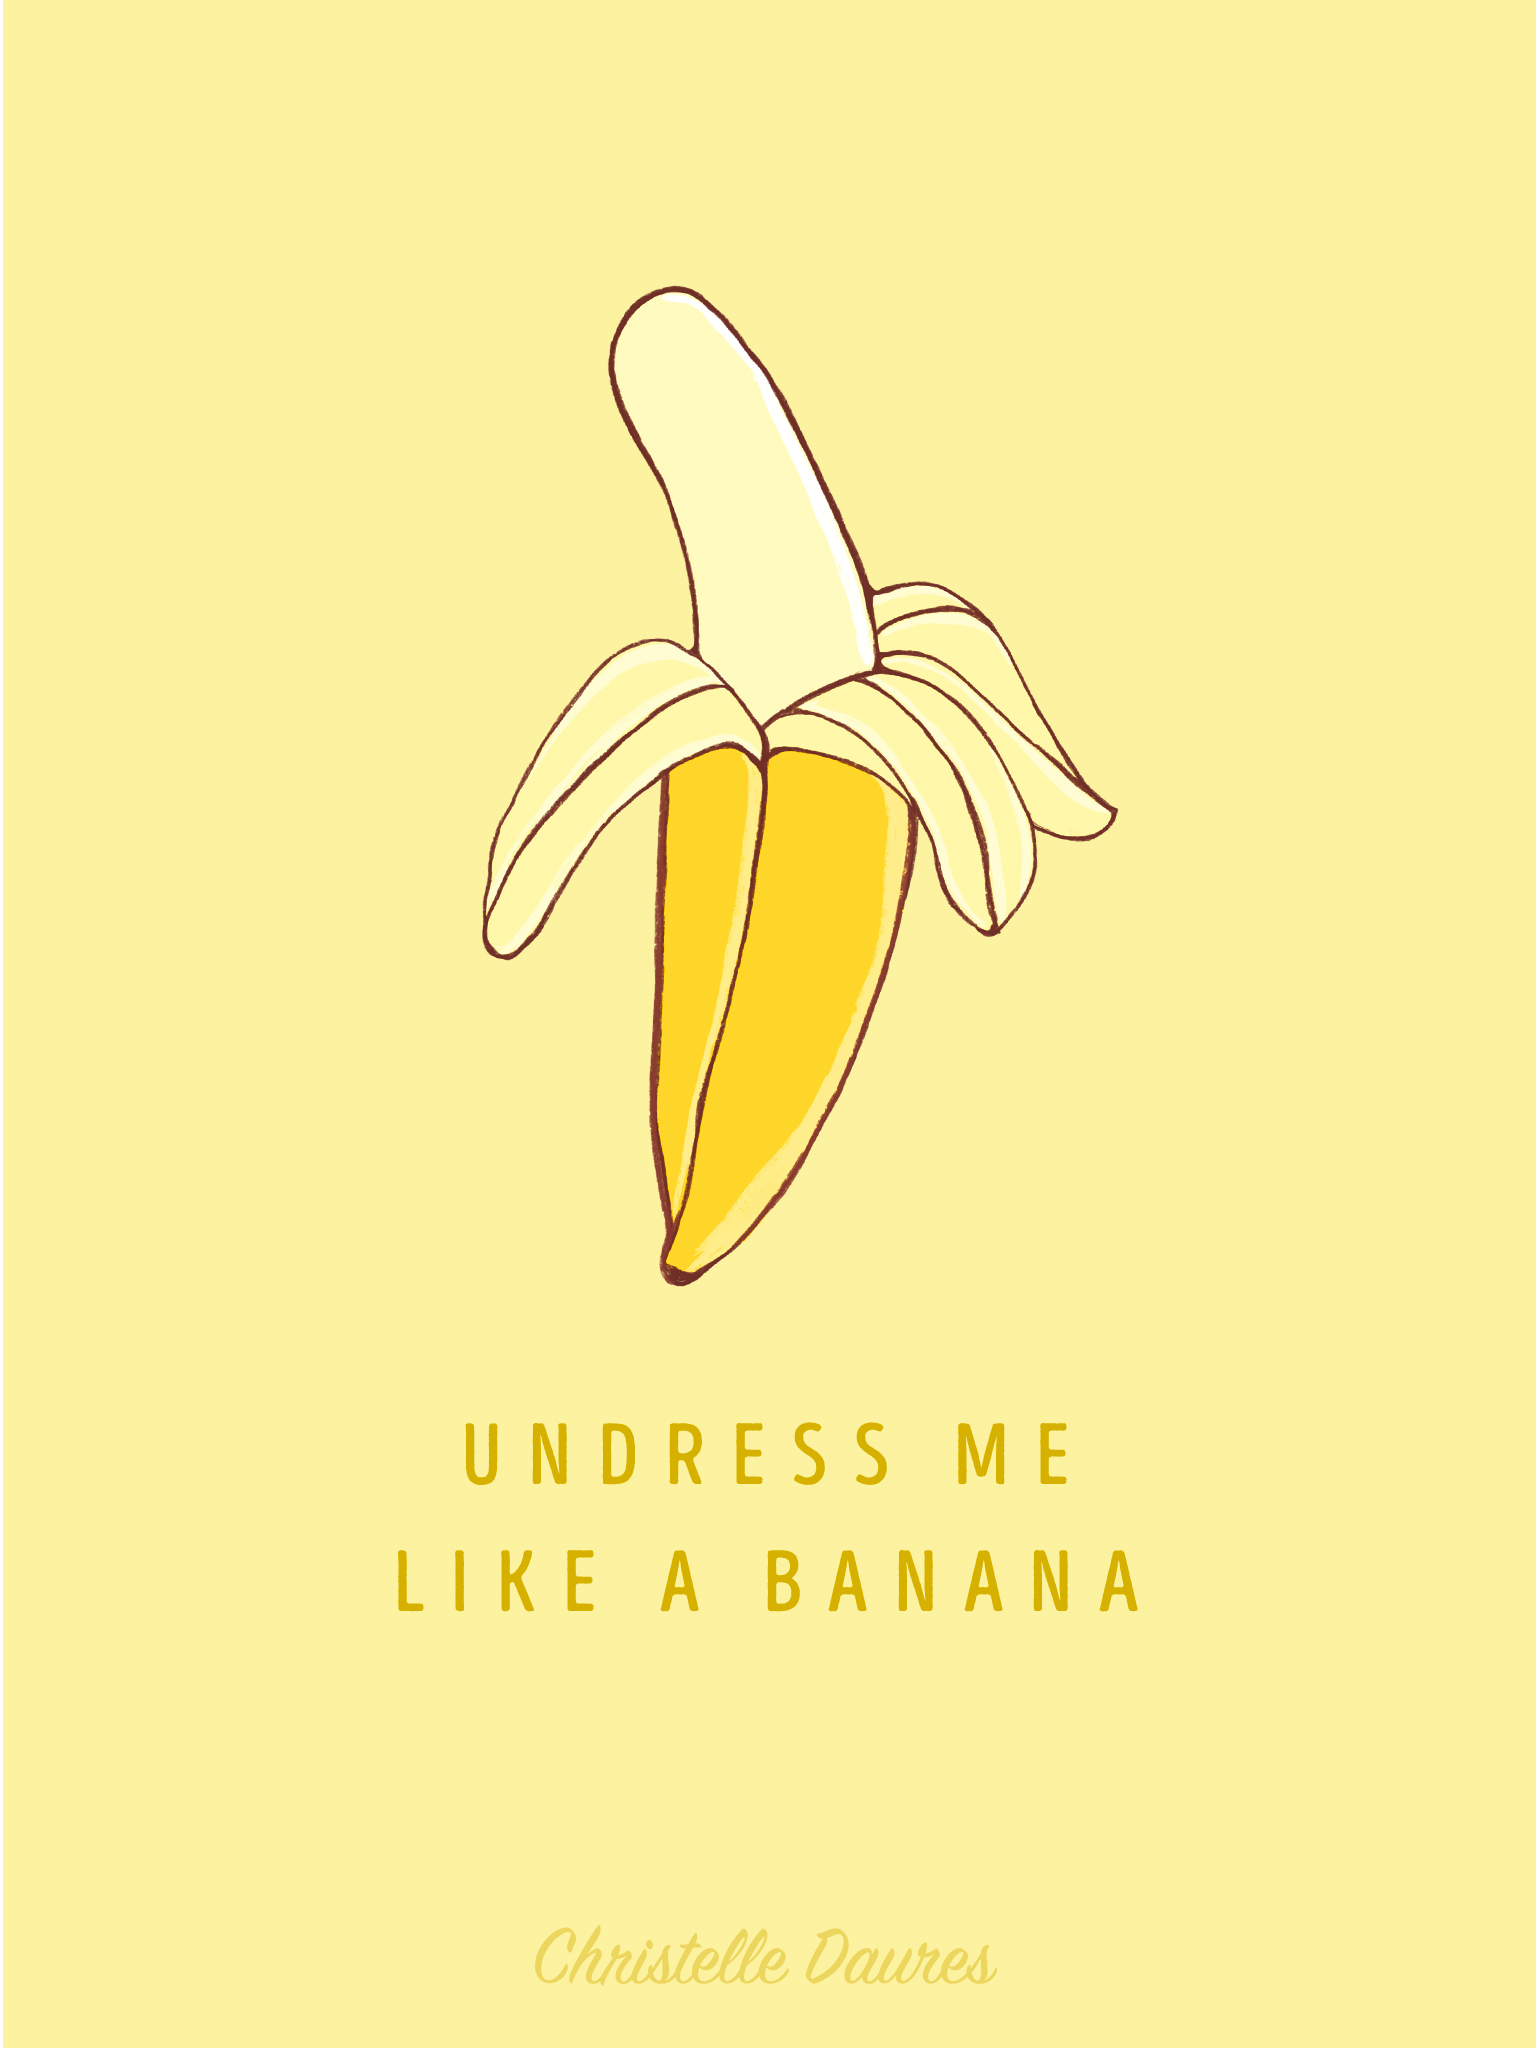 ipad-undress-me-like-a-banana-wallpaper-fond-ecran-dessin-pins